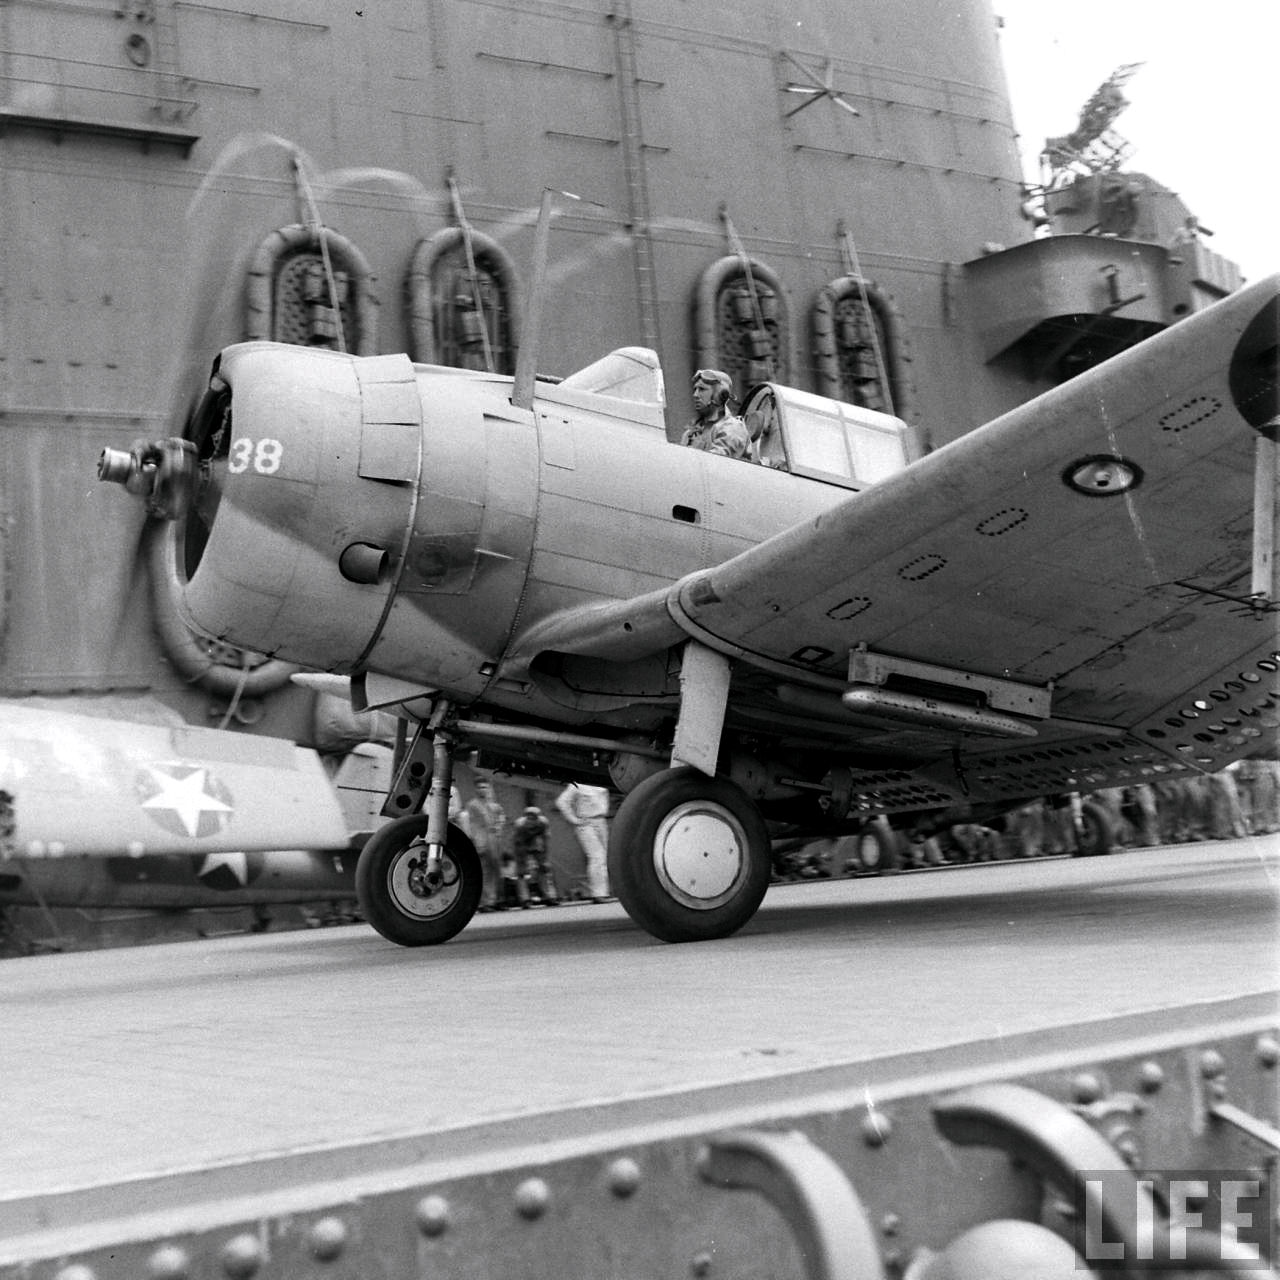 Douglas SBD 3 Dauntless White 38 taxing aboard a USS Carrier Sep 1942 01